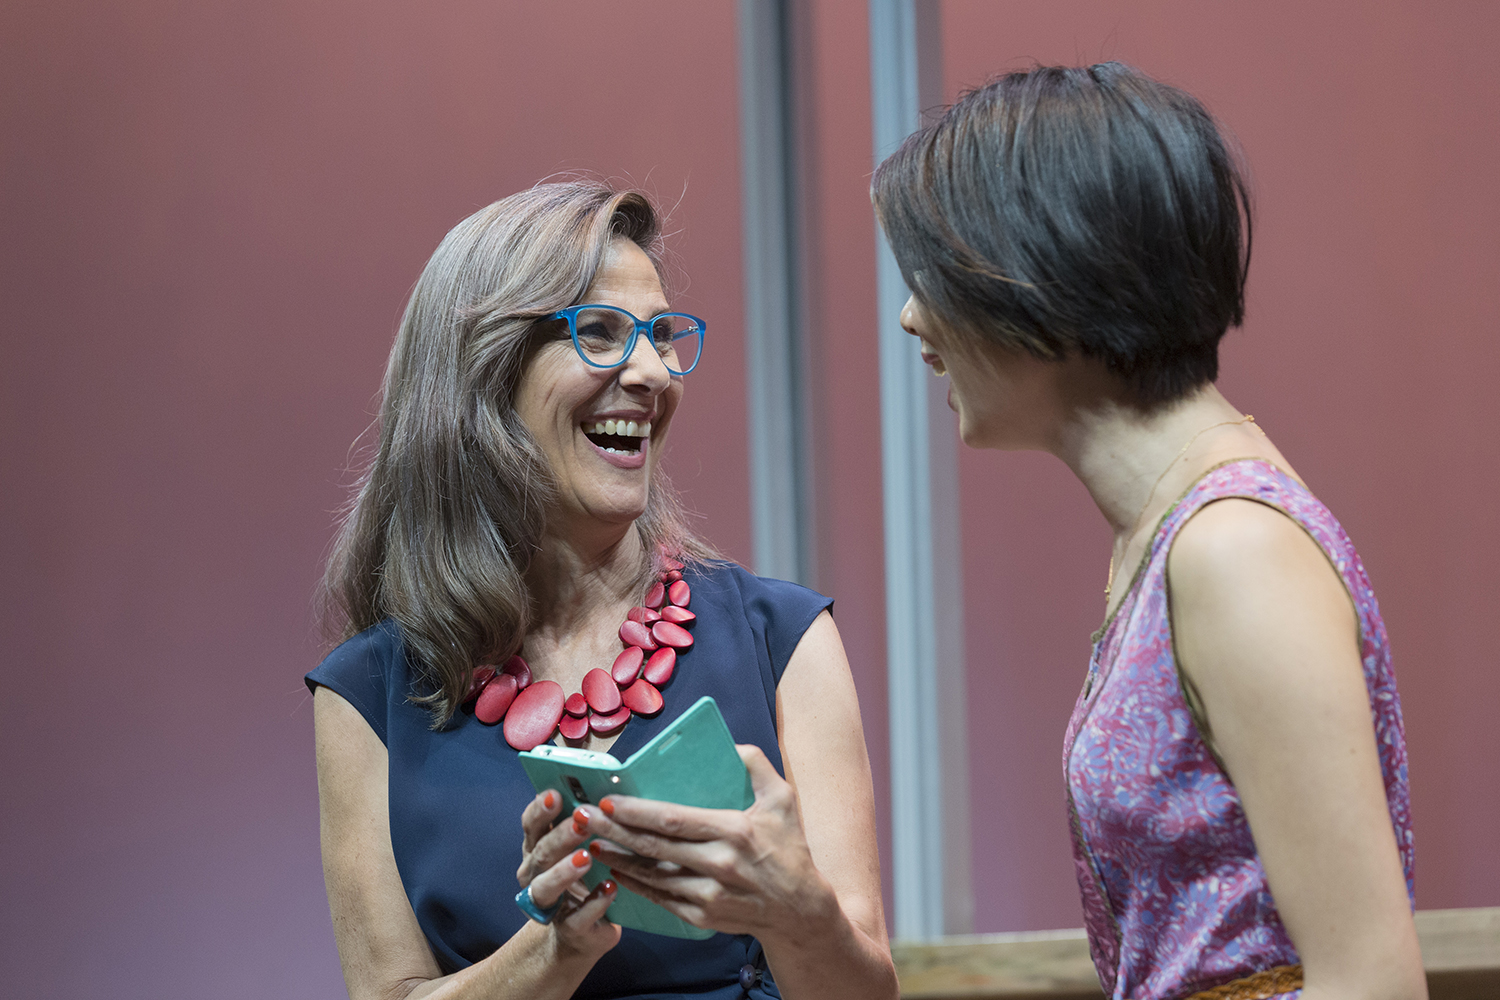 10. Zoe Carides and Aileen Huynh in THE BIG TIME at Ensemble Theatre, 2019 - Photo by Brett Boardman_001736-mediumres.jpg